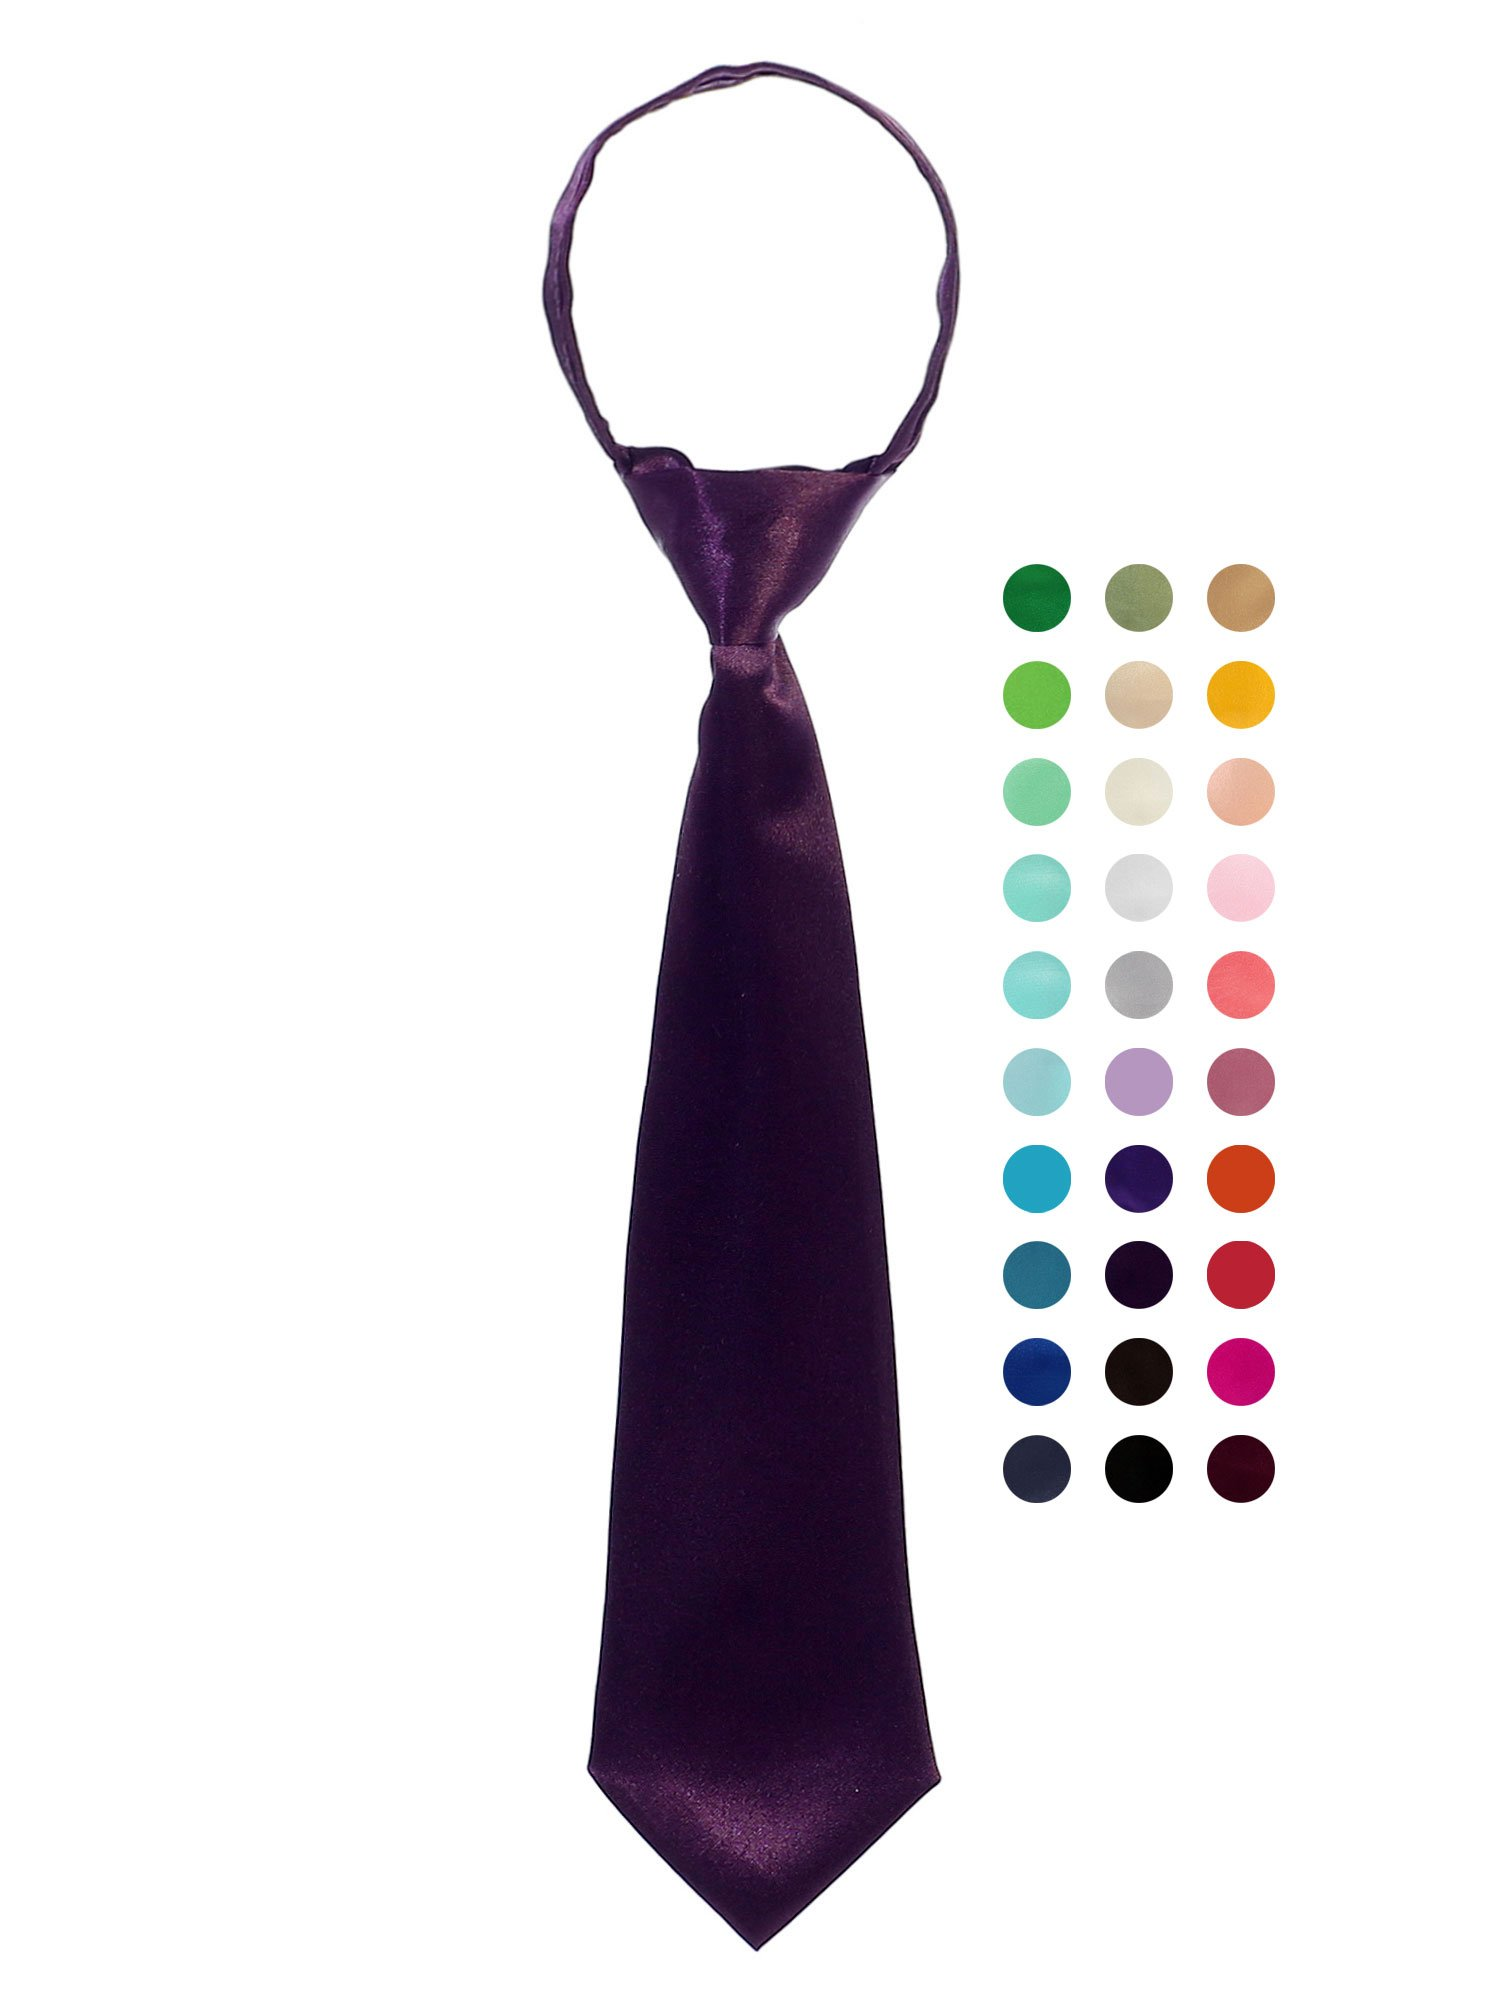 Bello Giovane Boys 100% Handmade Satin Zipper Neck Tie-Plum-L